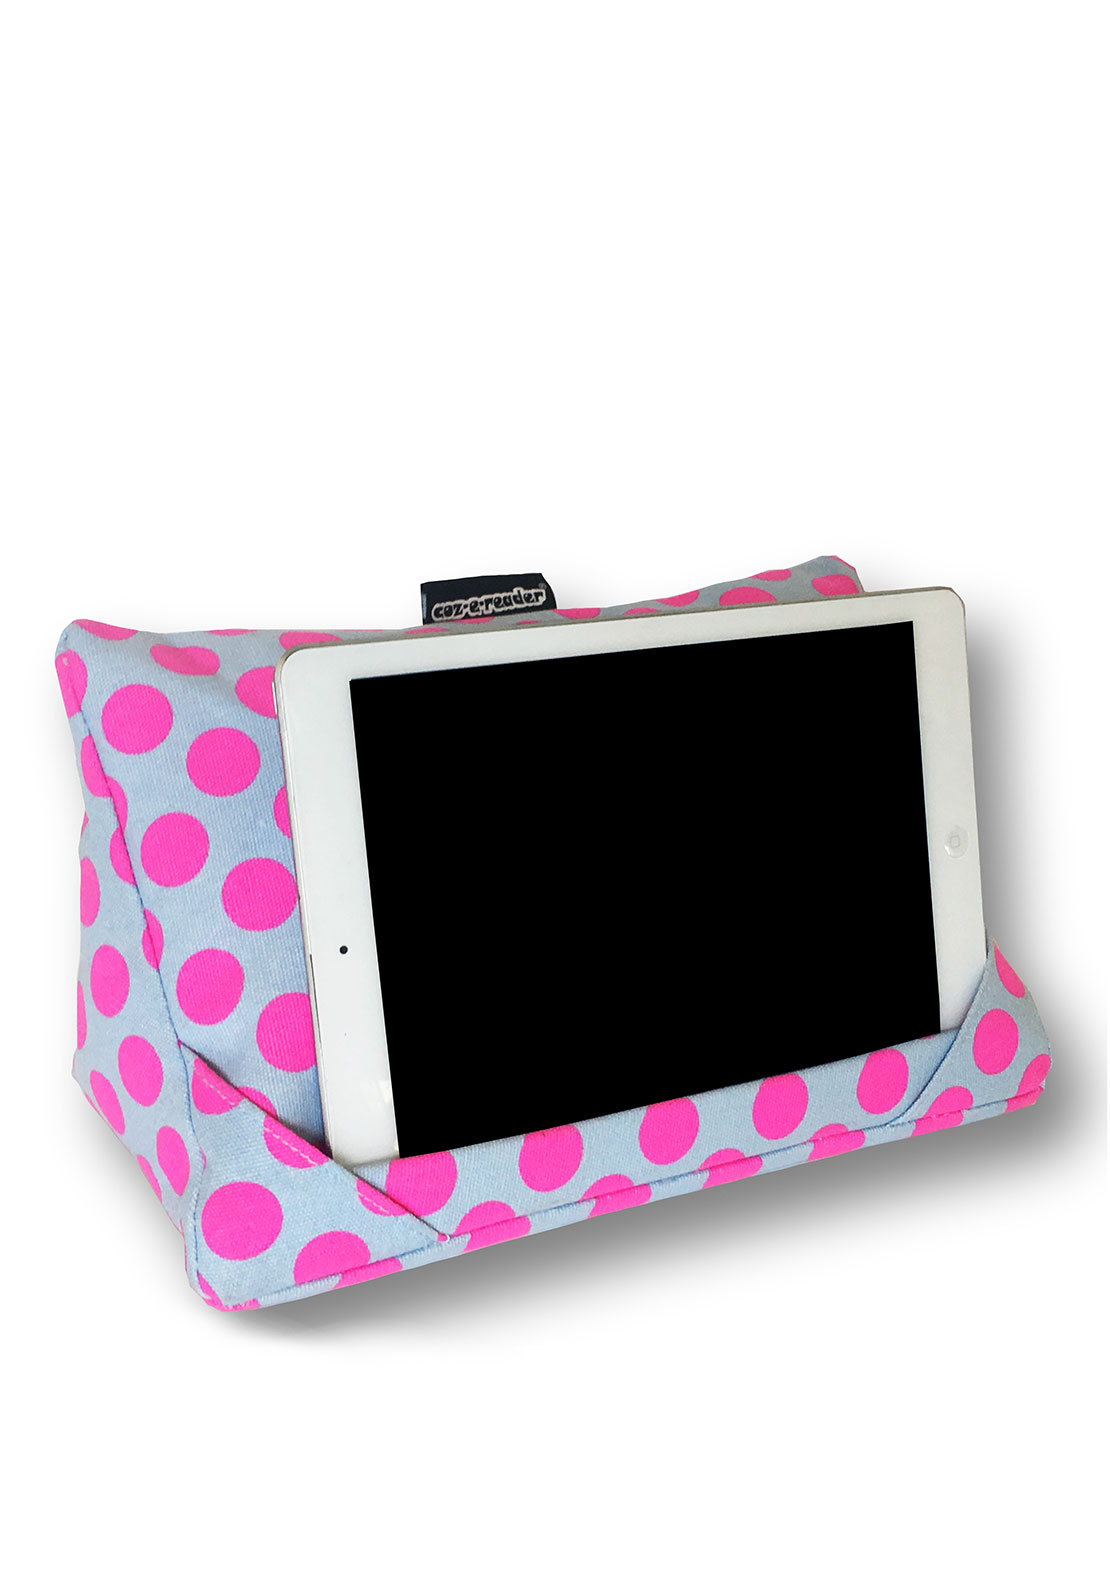 Coz-e-reader Polka Dot Tablet Cushion, Pink